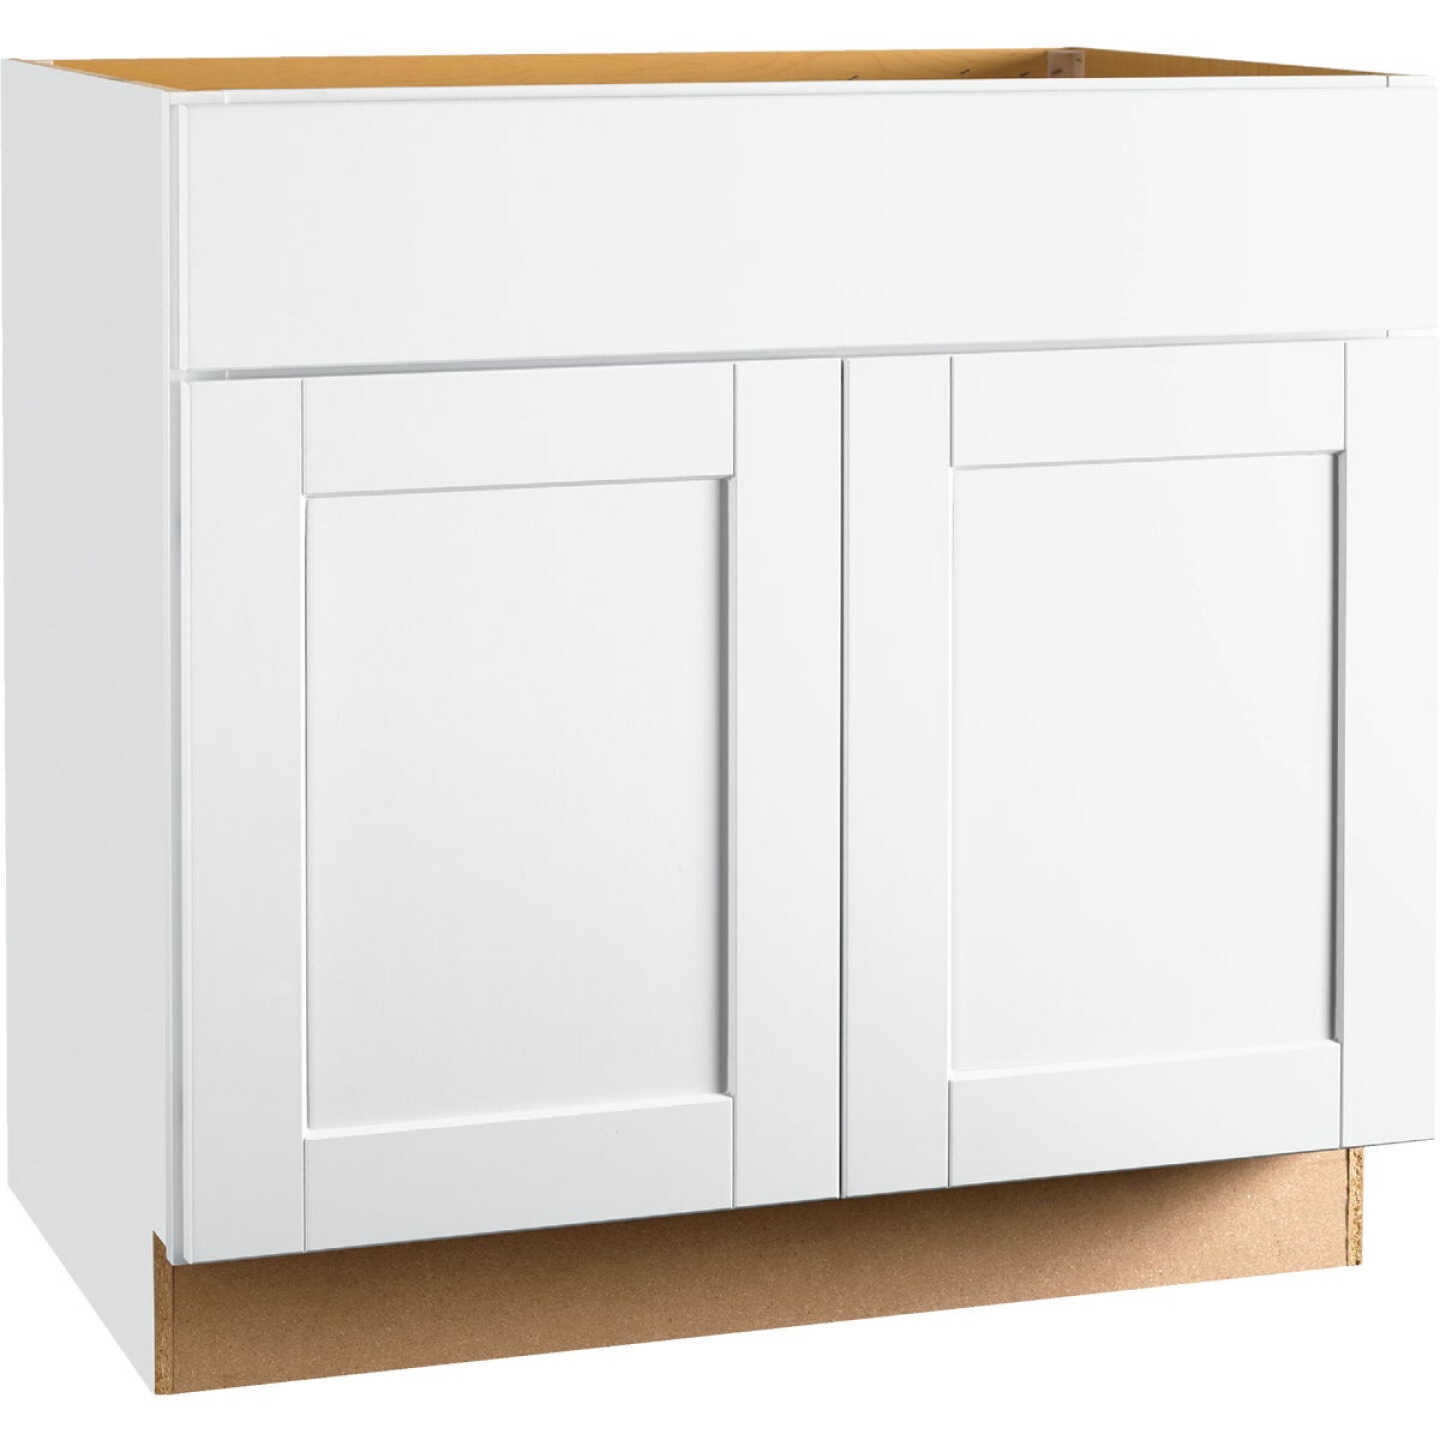 Continental Cabinets Andover Shaker 36 In. W x 34-1/2 In. H x 21 In. D White Vanity Sink Base Image 1